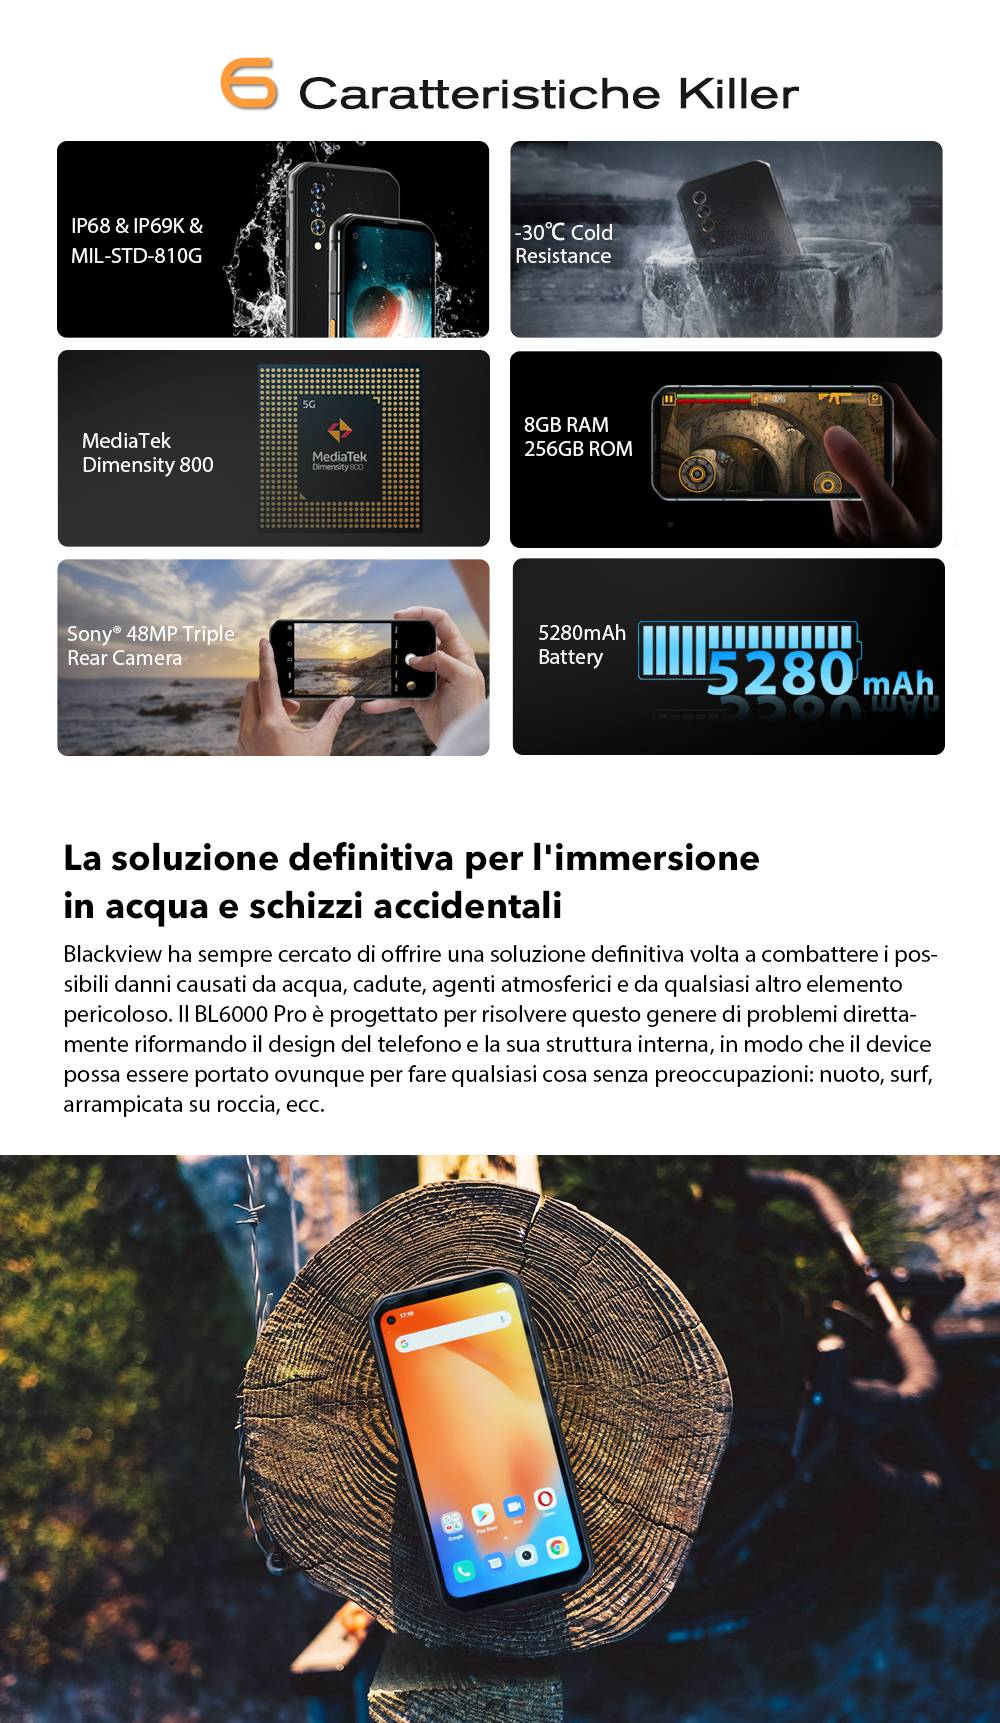 processore mediatek dimensity 800 blackview